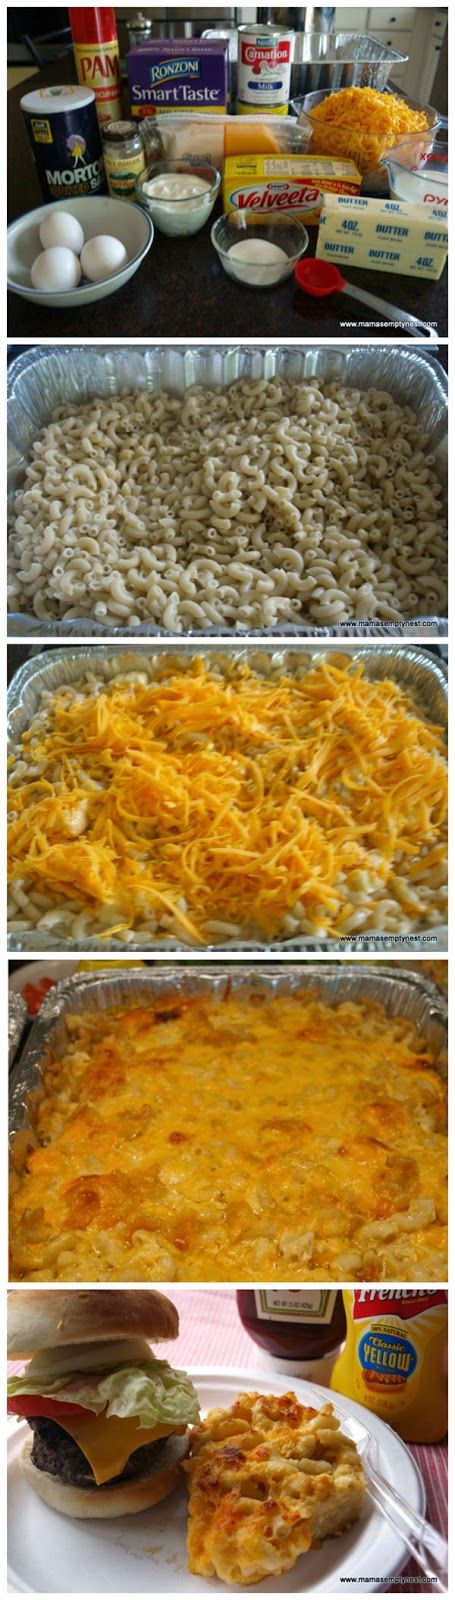 Sweetie Pie's Macaroni & Cheese | Food | Pinterest